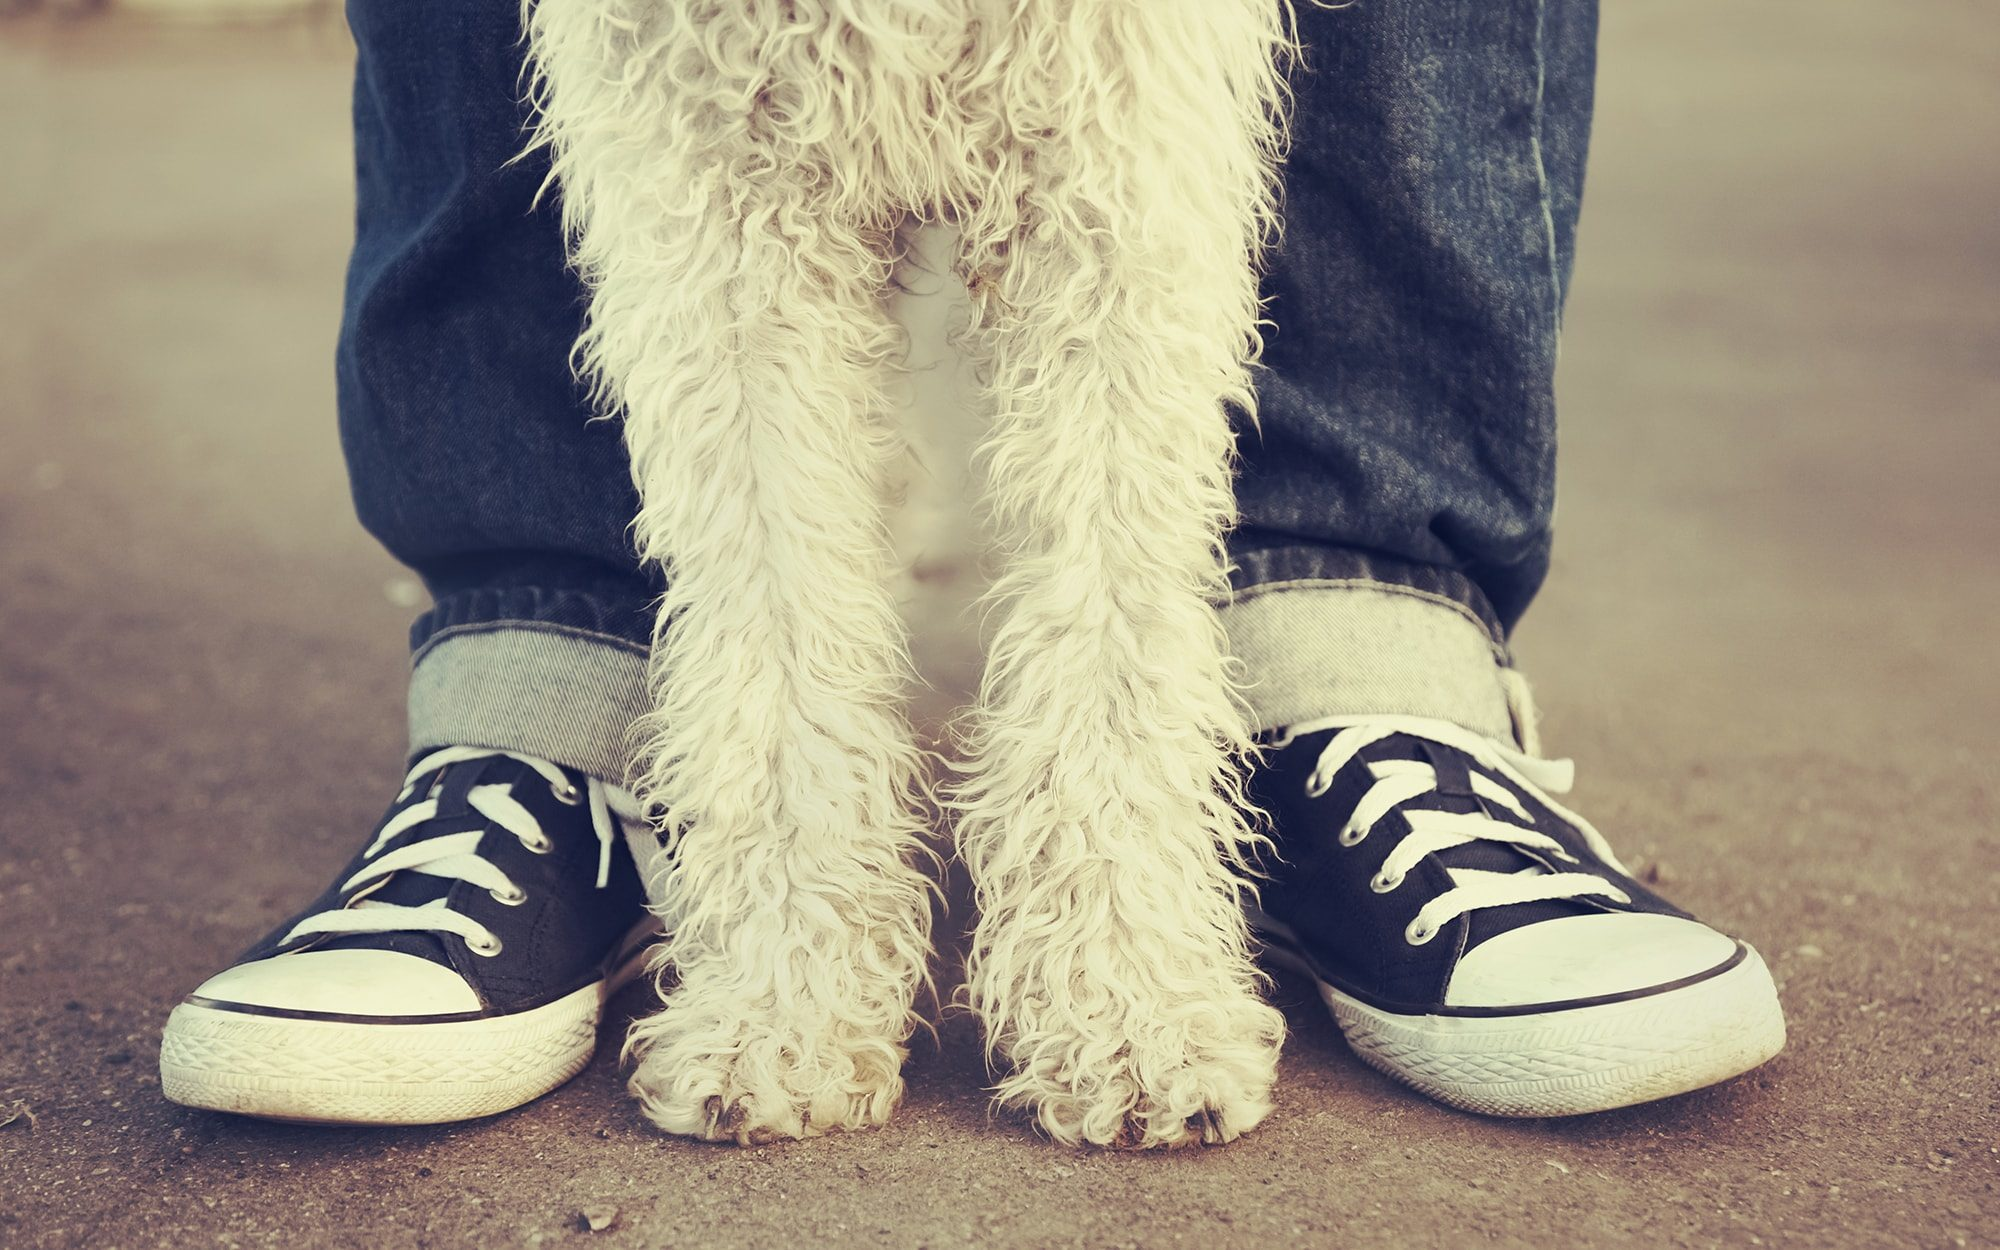 Dog standing between legs of person wearing skate shoes